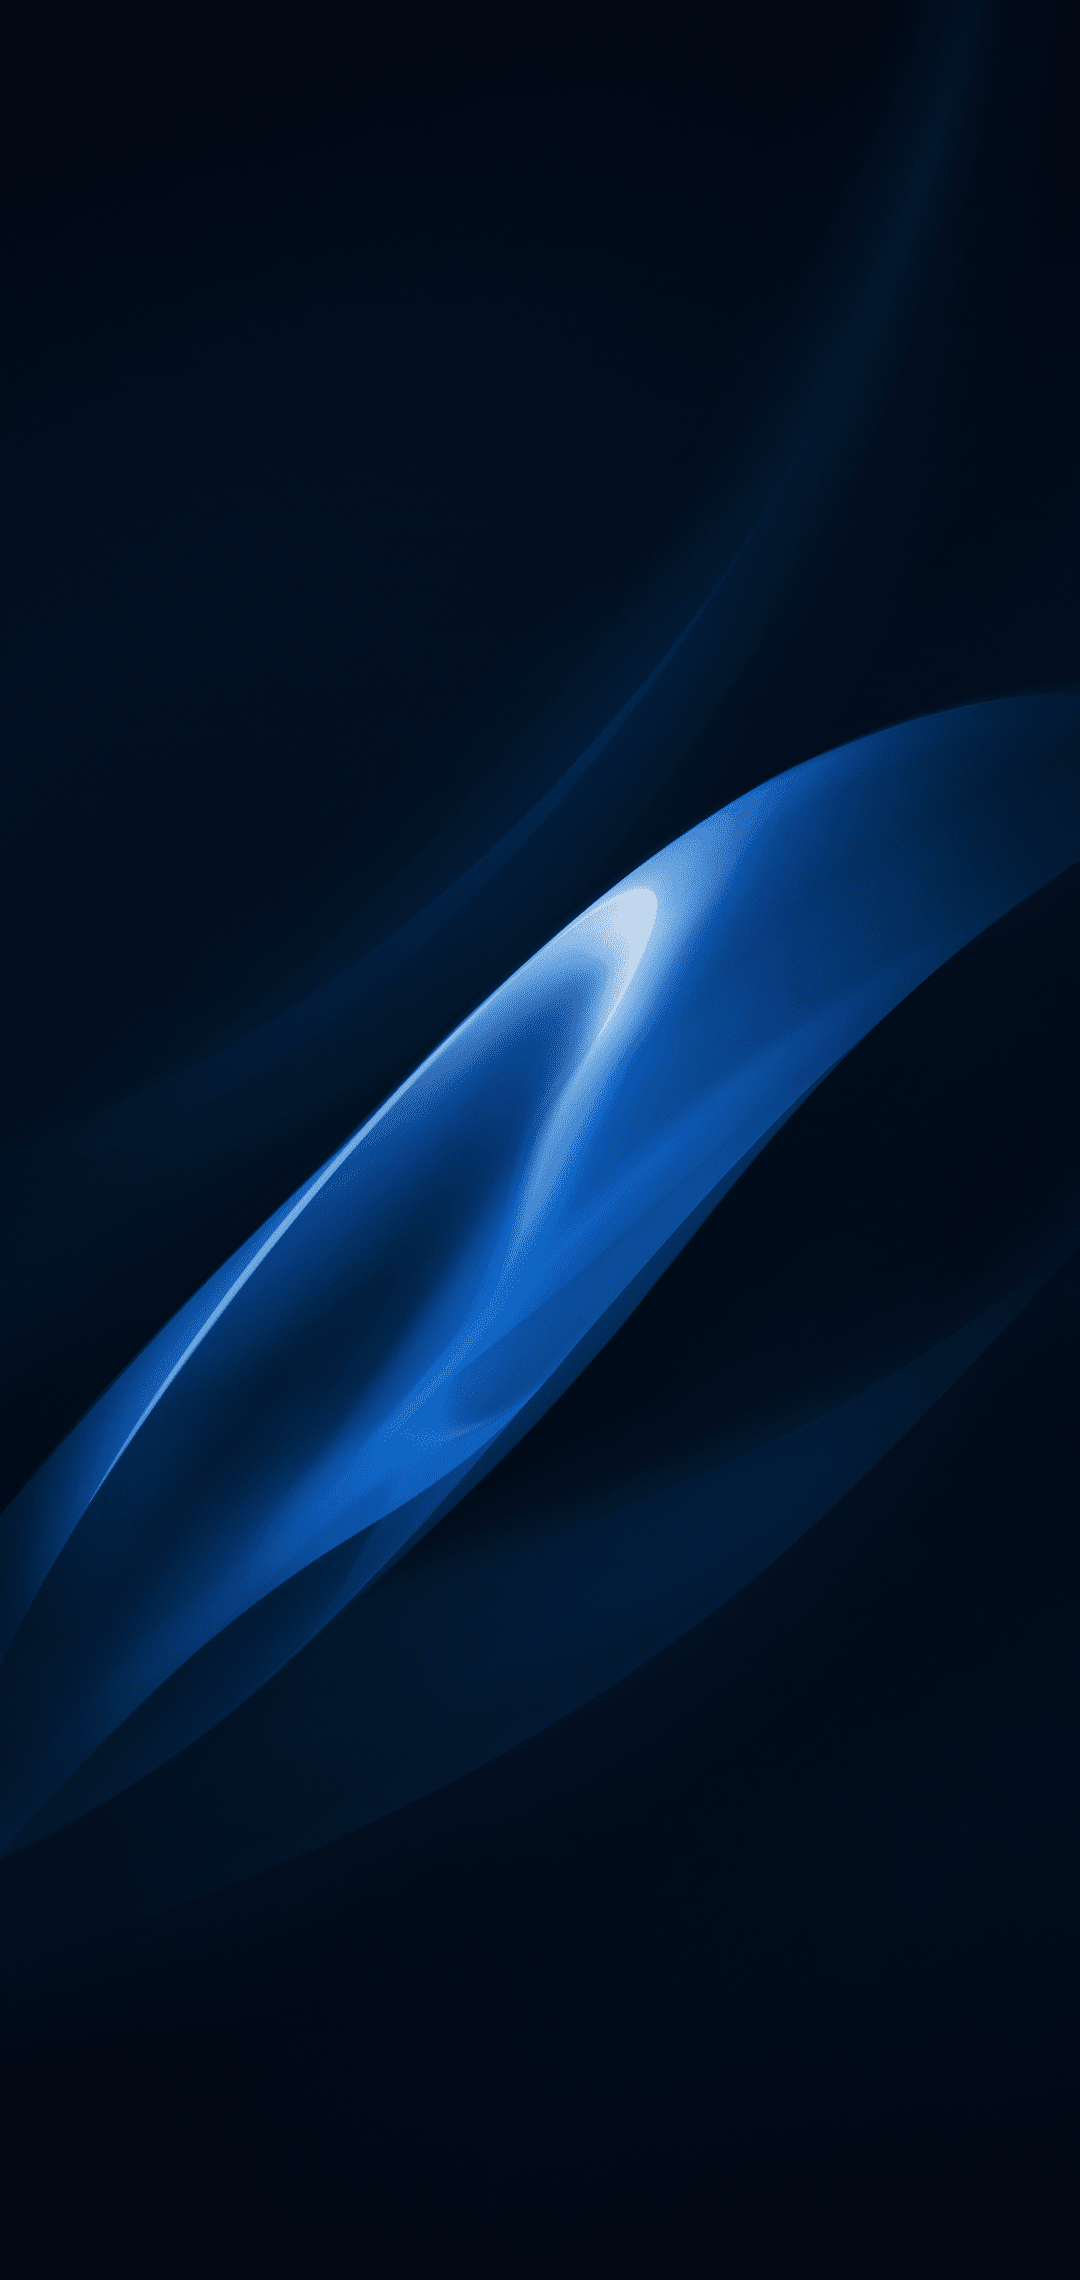 OPPO R15 Stock Wallpapers | Download 15